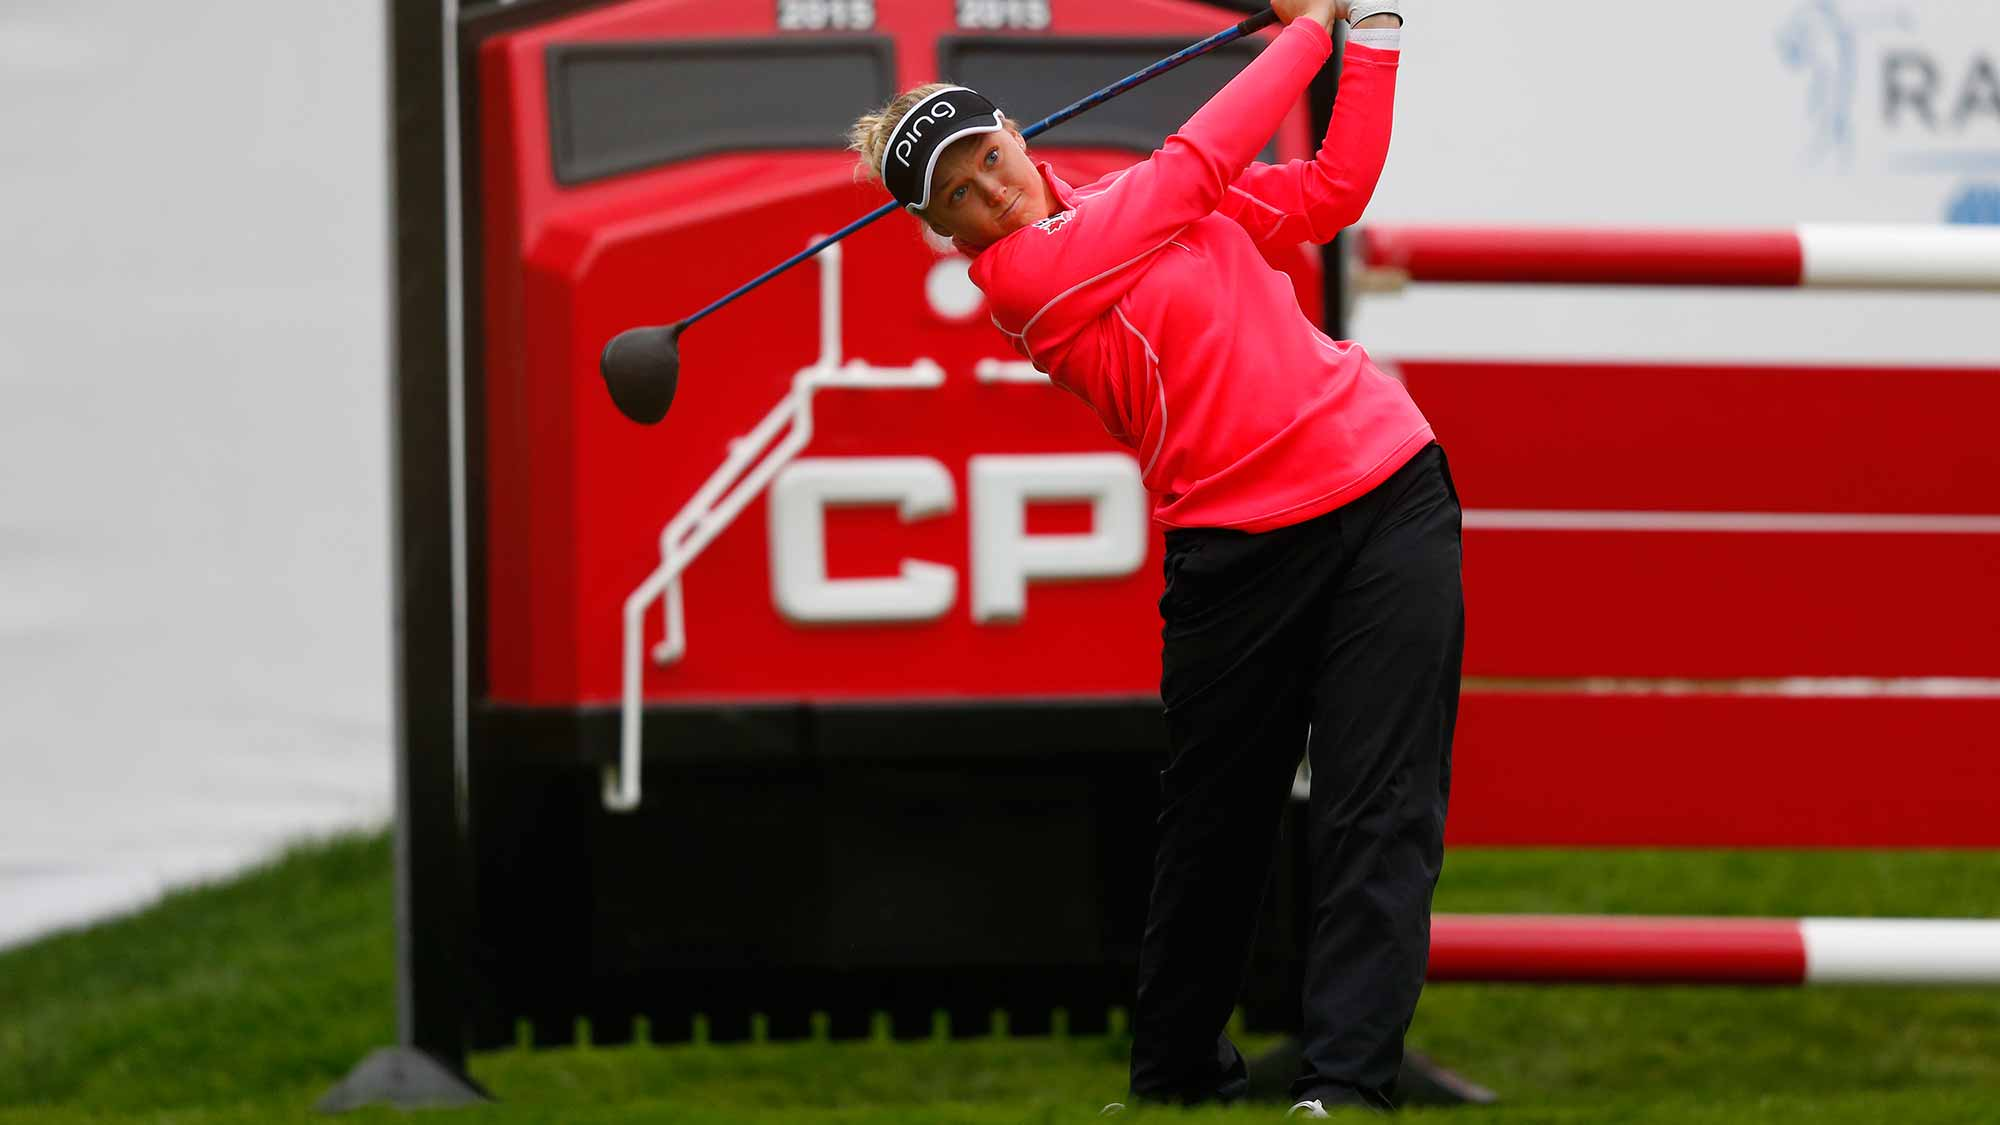 CP Women's Open Top Storylines